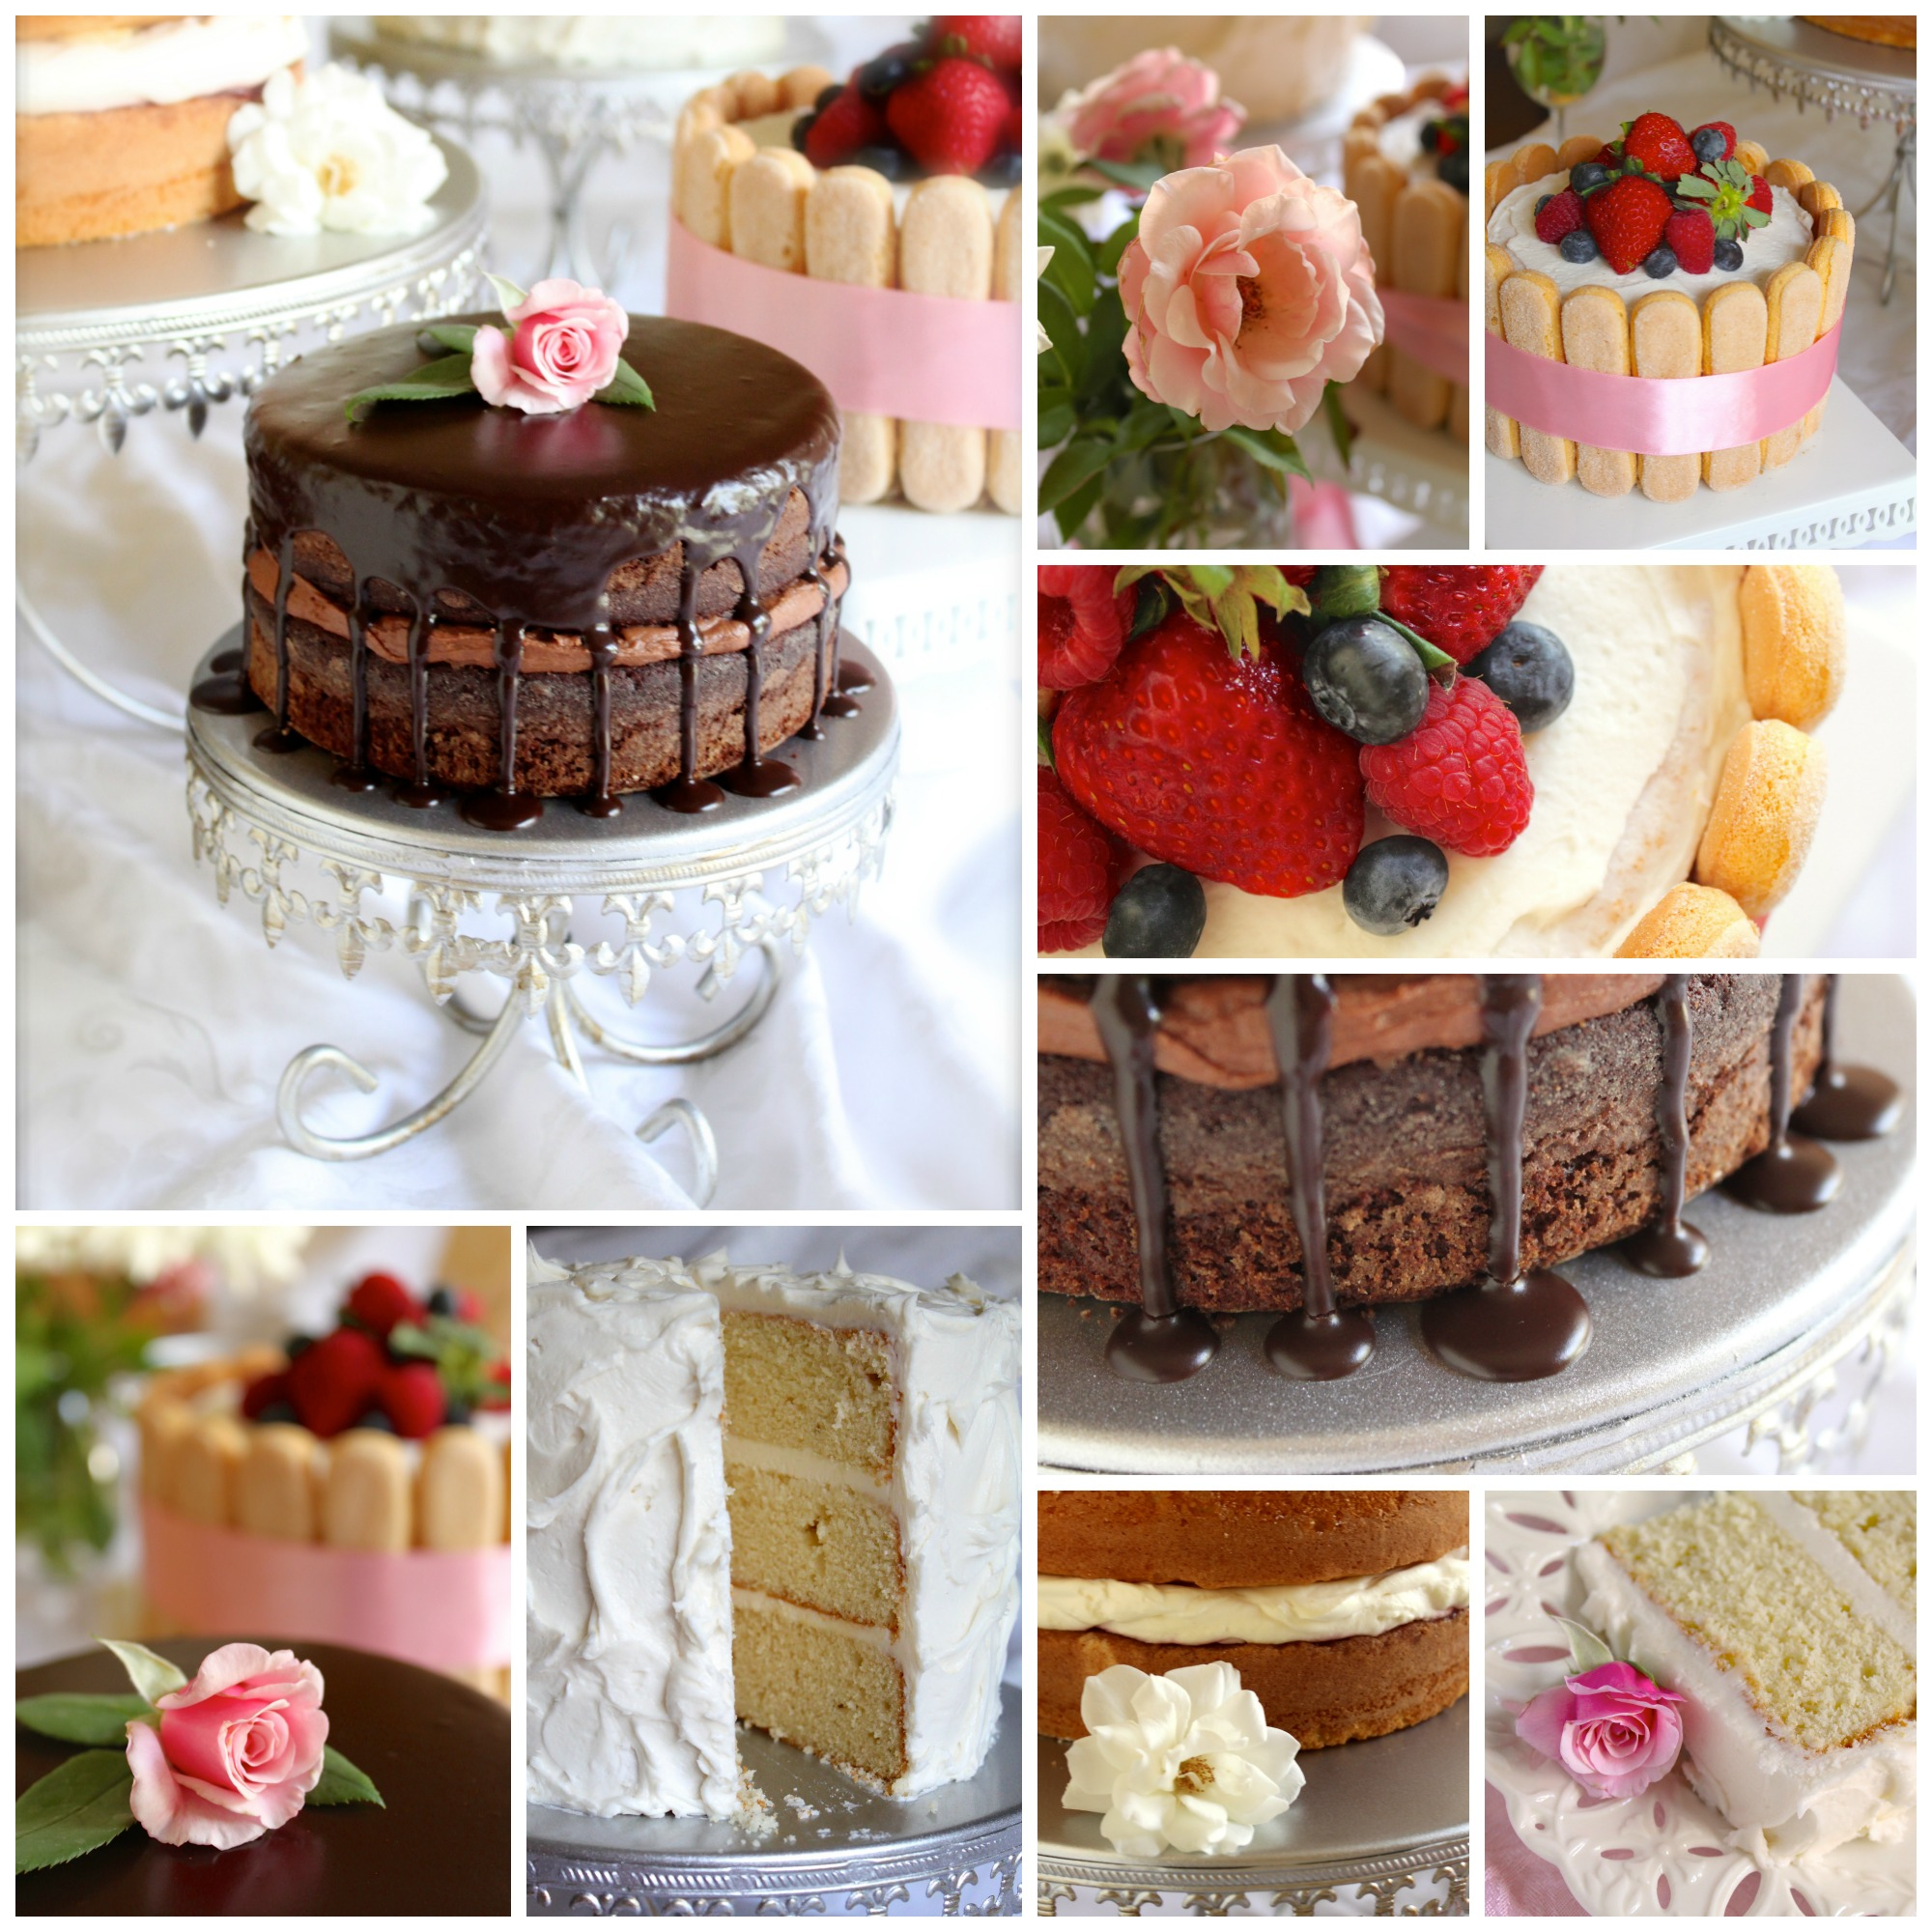 A Cake Decorating Tutorial for Impressive Results  for the Cake     CakeCollage